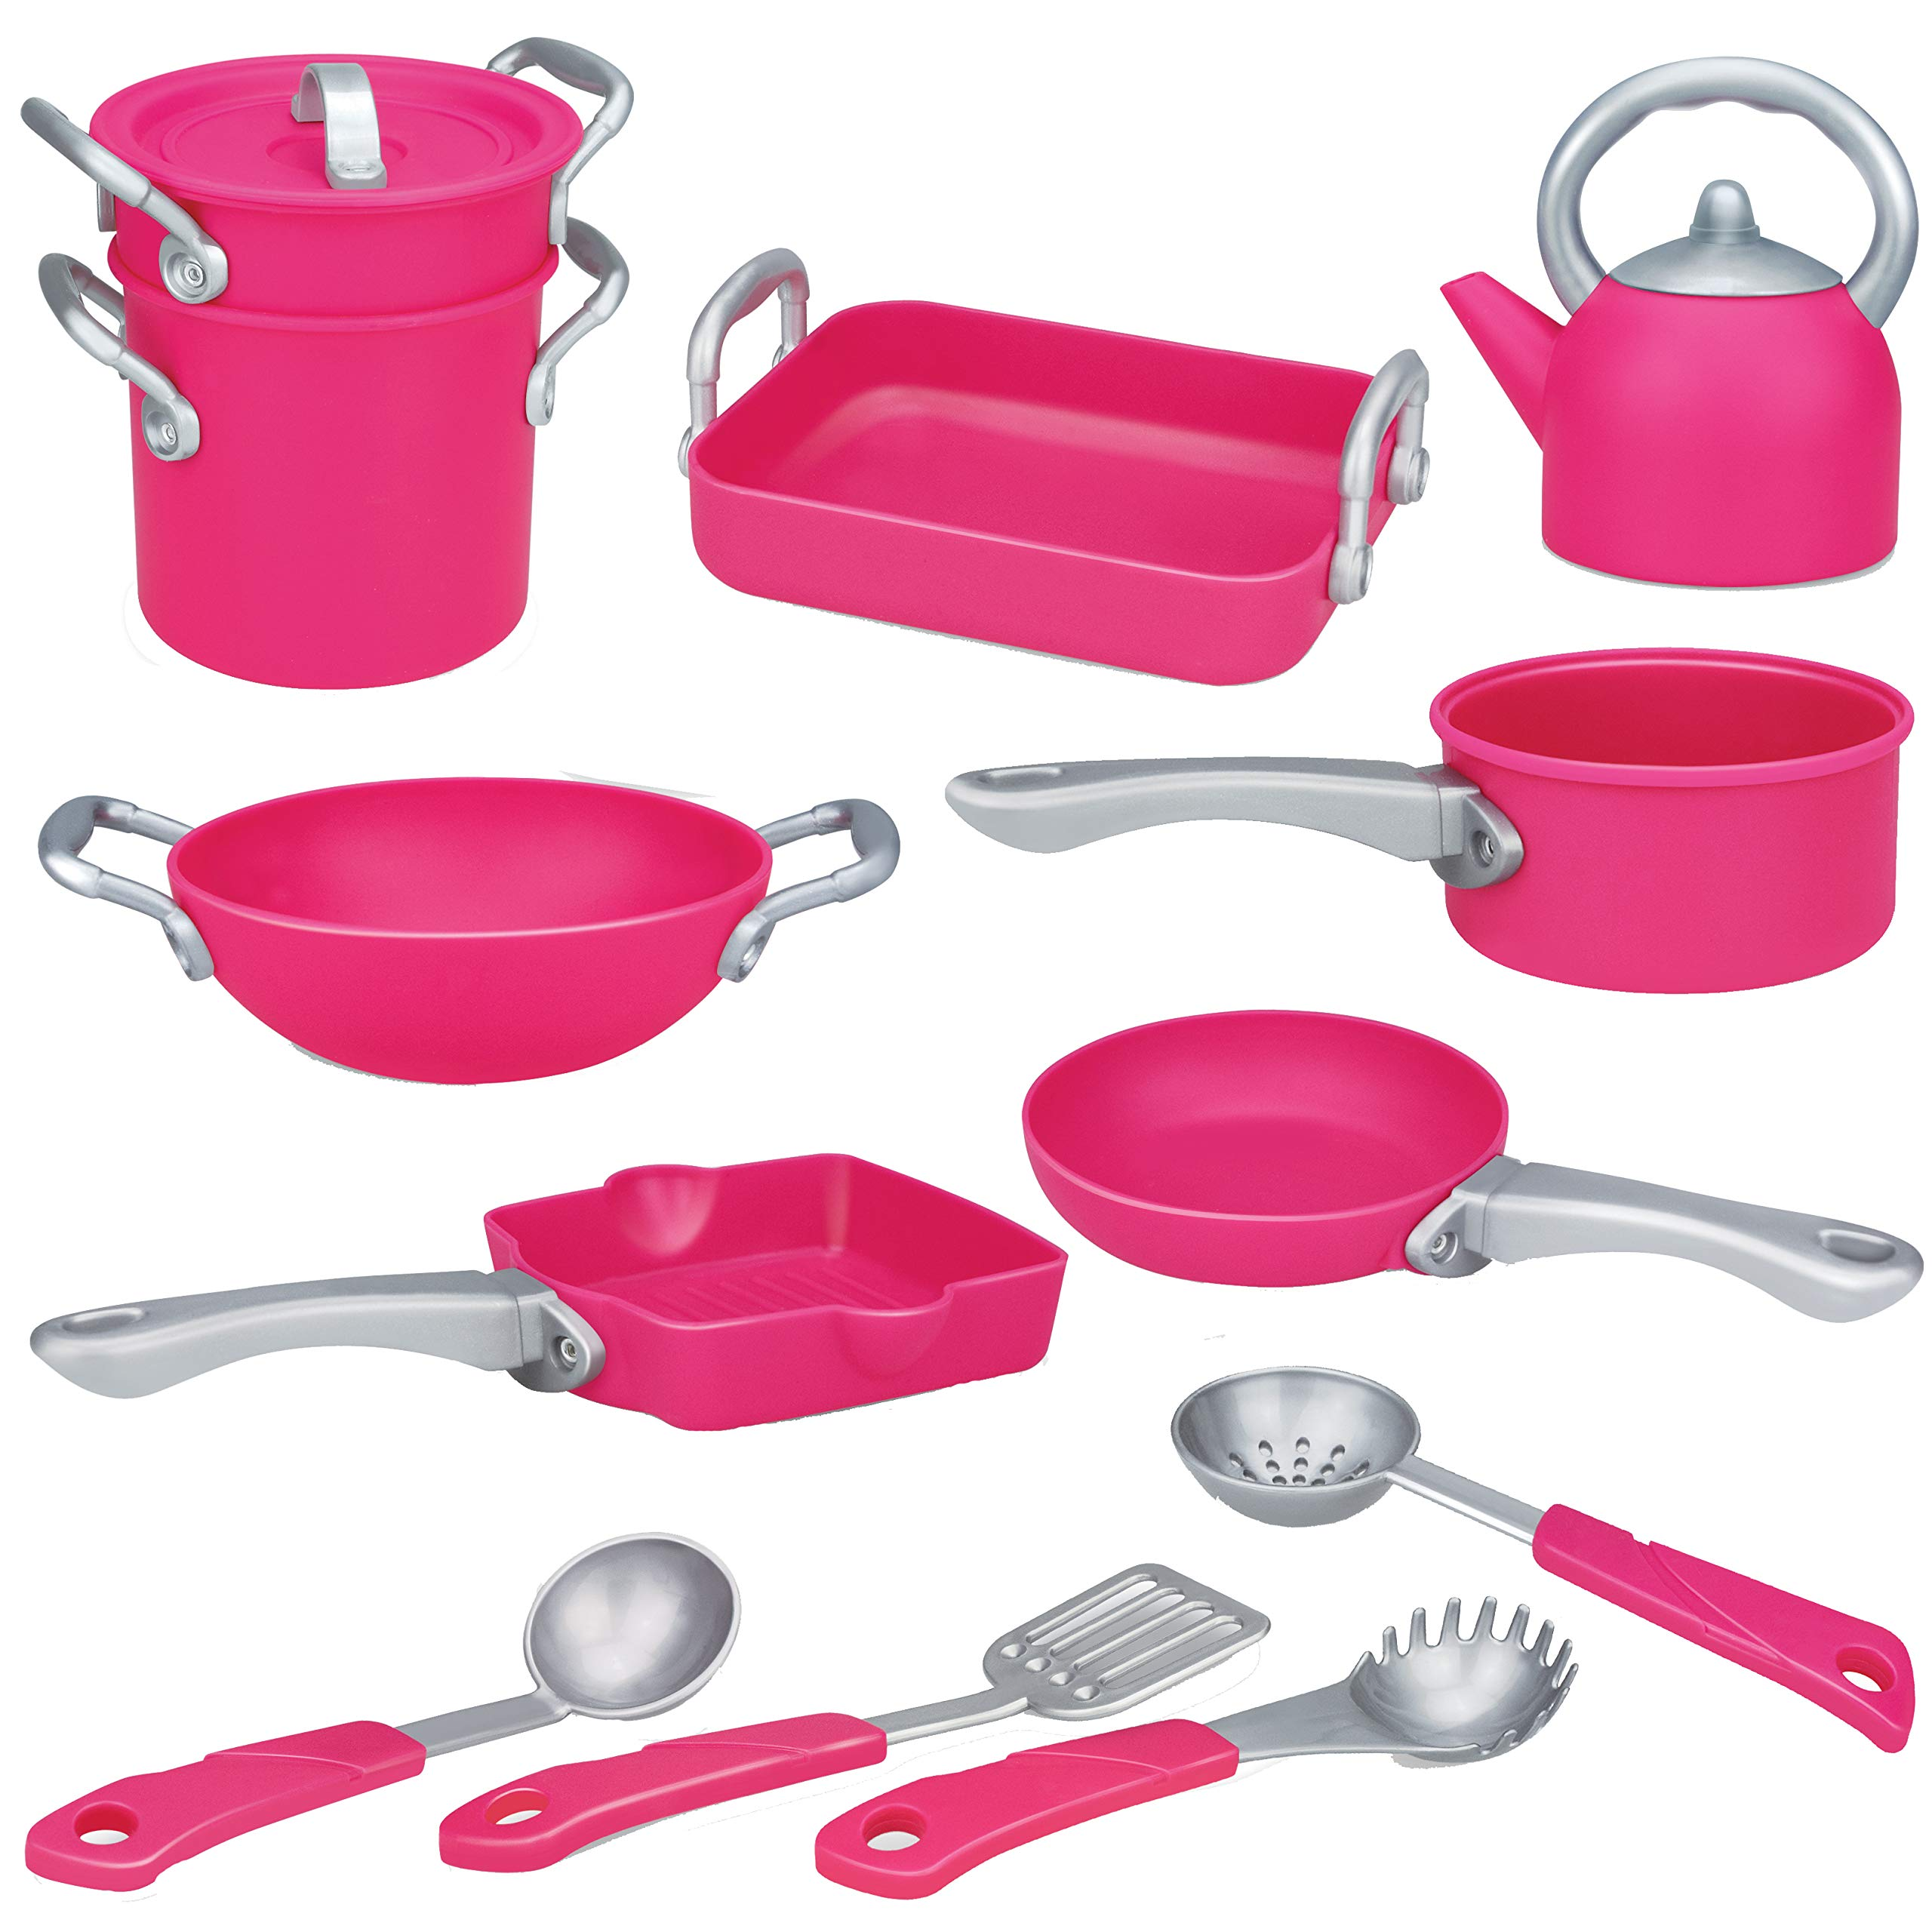 Liberty Imports Deluxe Pink Kitchen Gourmet Cookware Pots and Pans Premium Playset for Girls (13 Pcs) by Liberty Imports